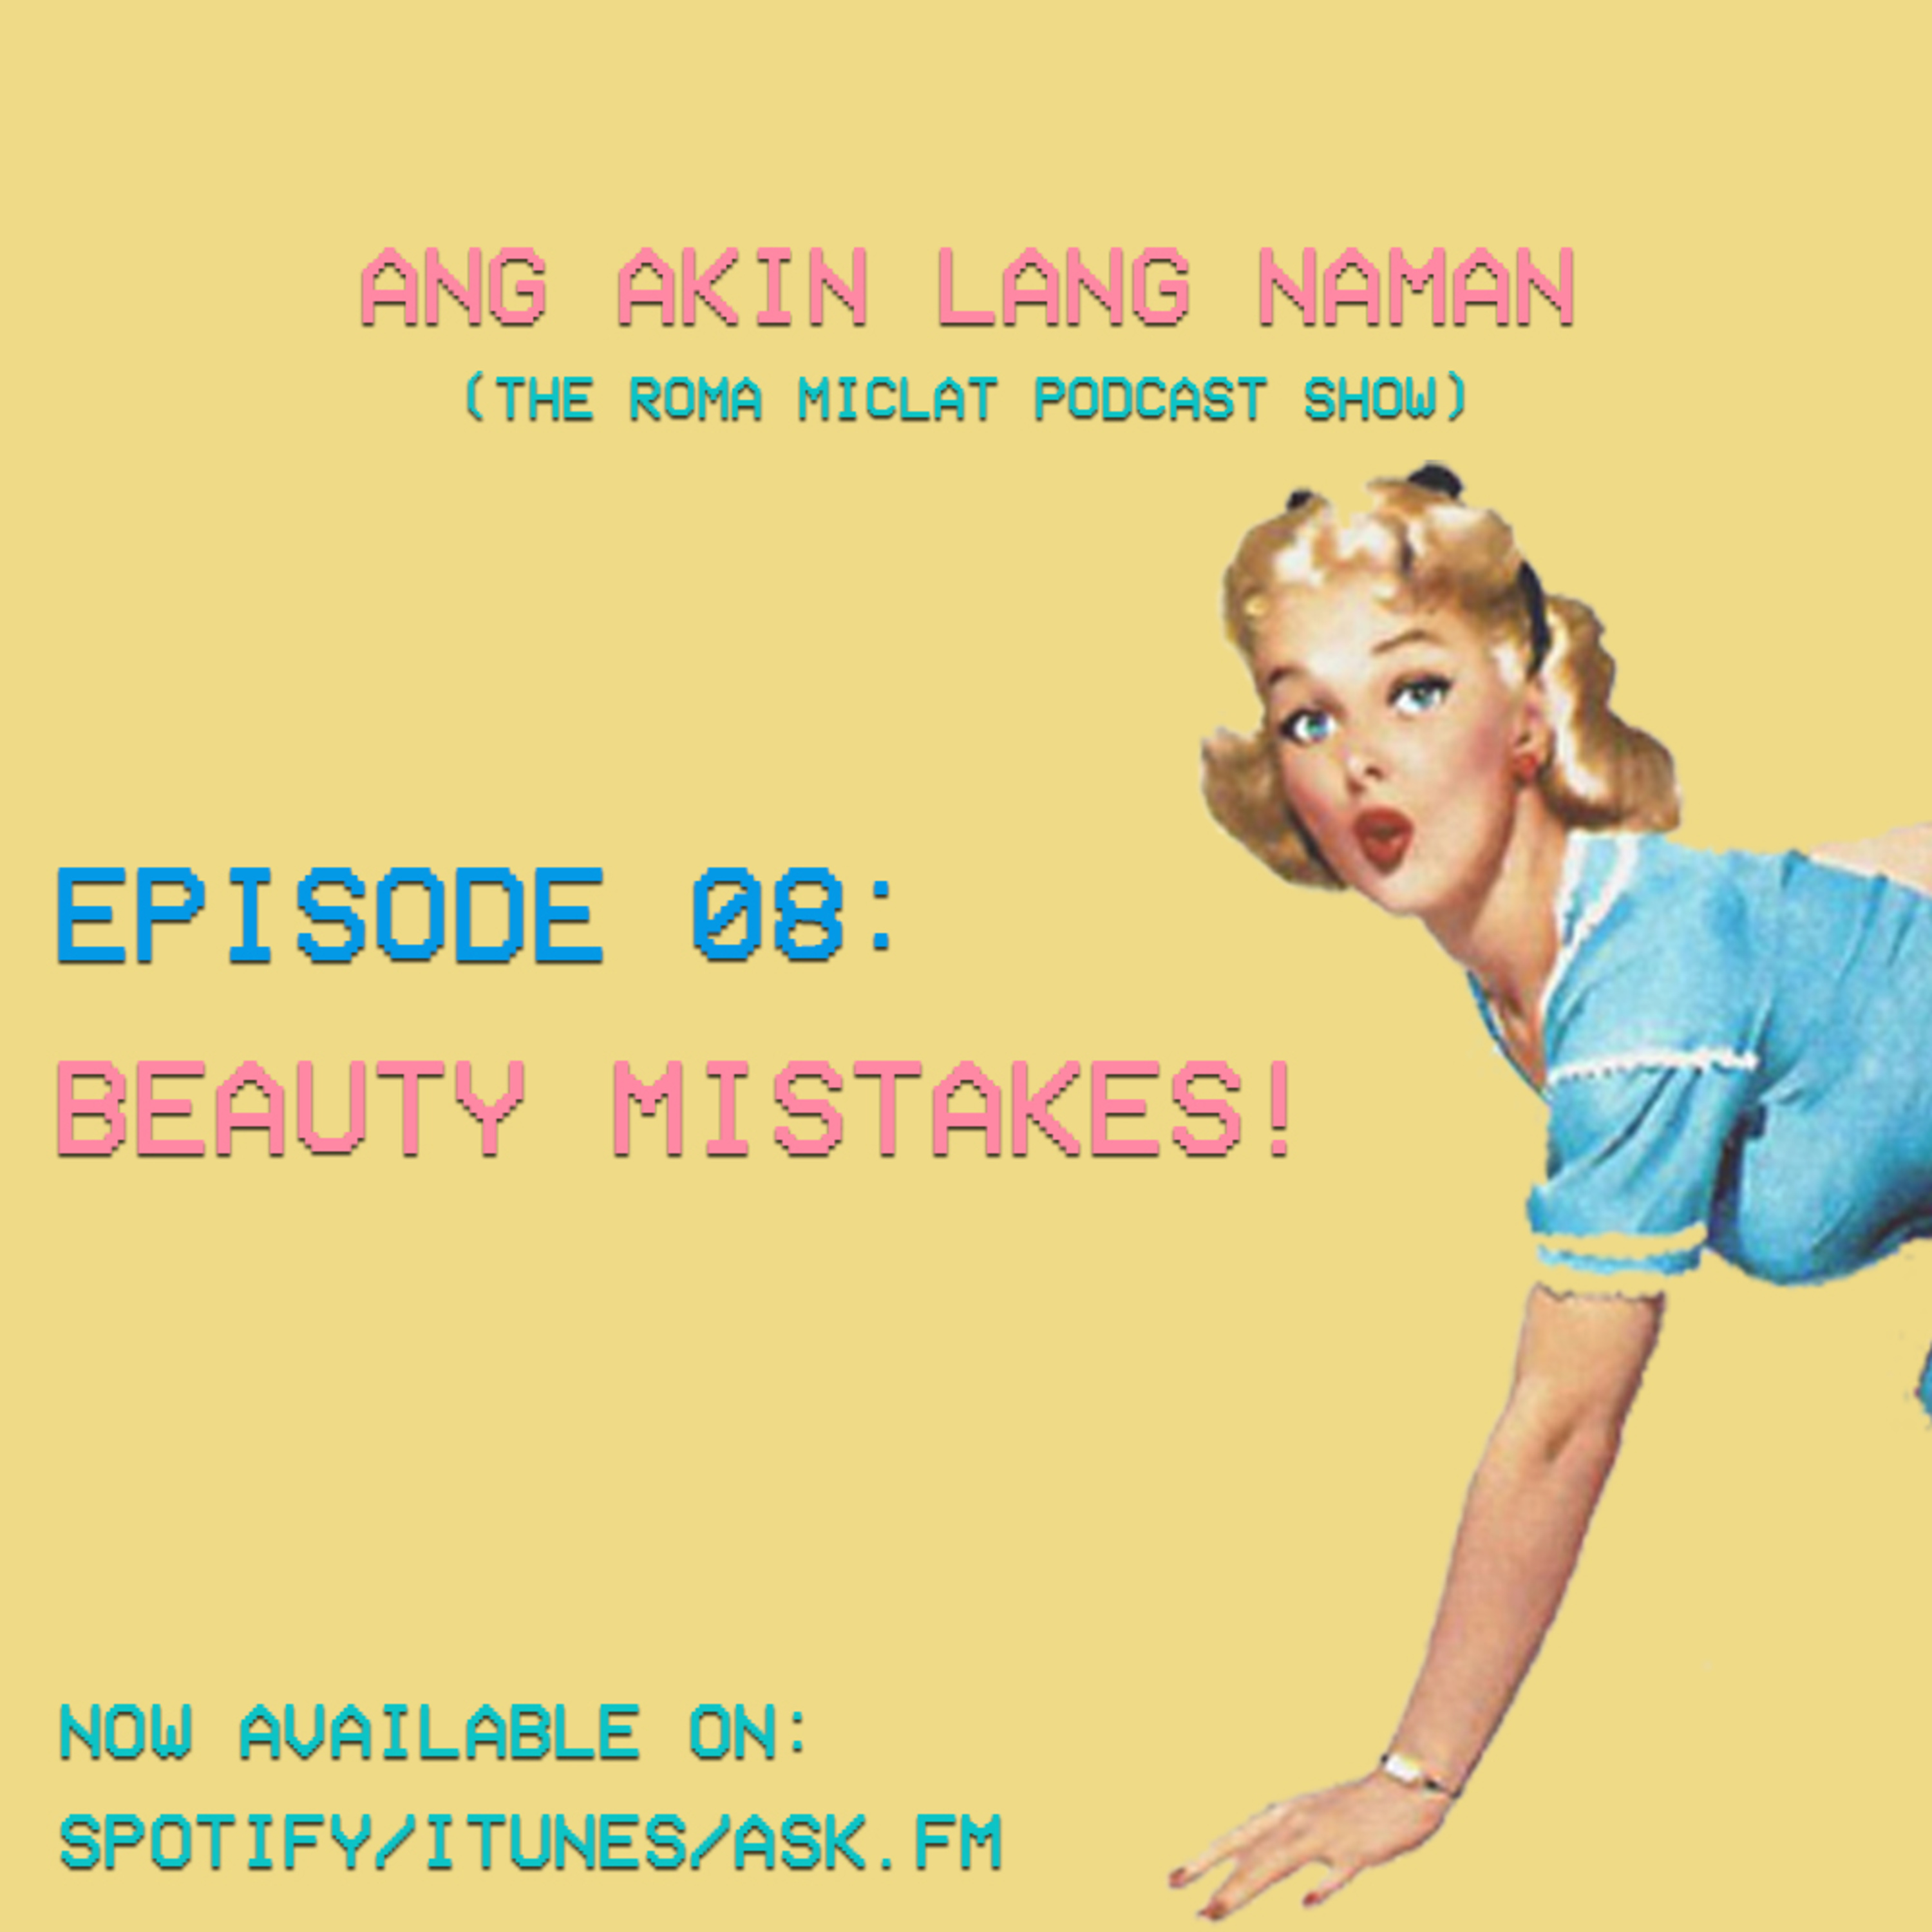 EPISODE 08 - Beauty Mistakes!